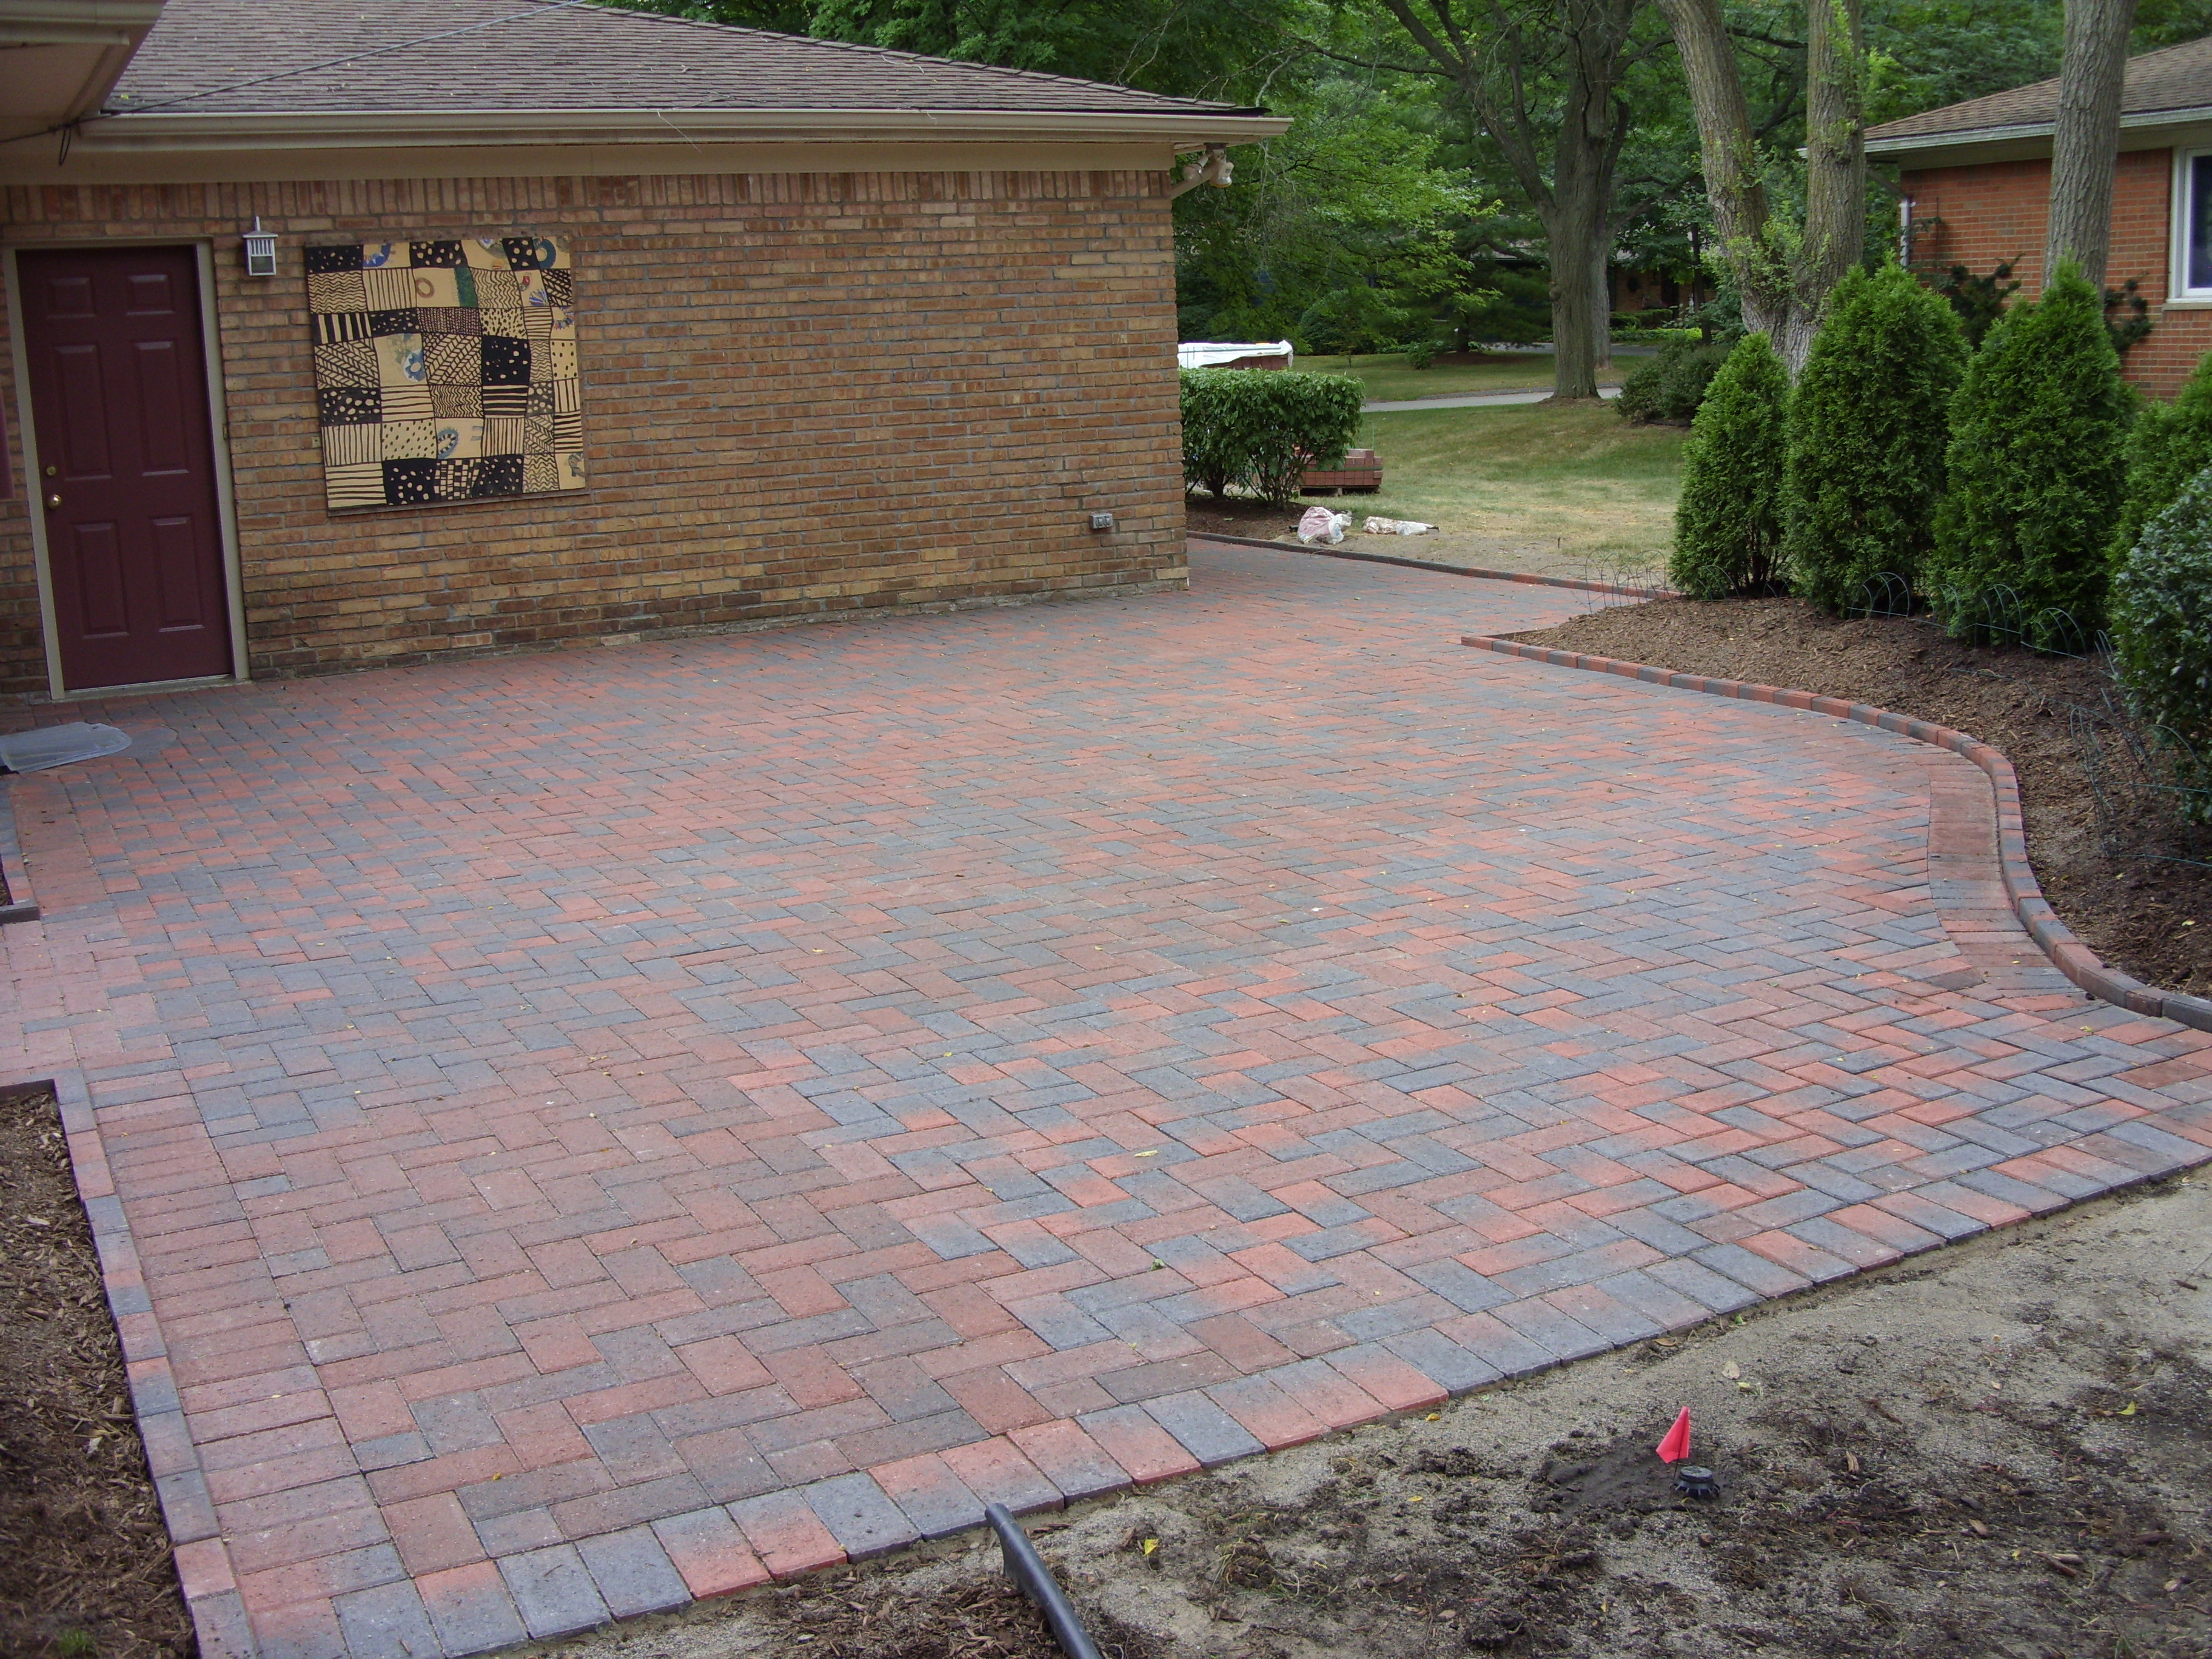 Brick Pavers Total Lawn Care Inc Full Maintenance